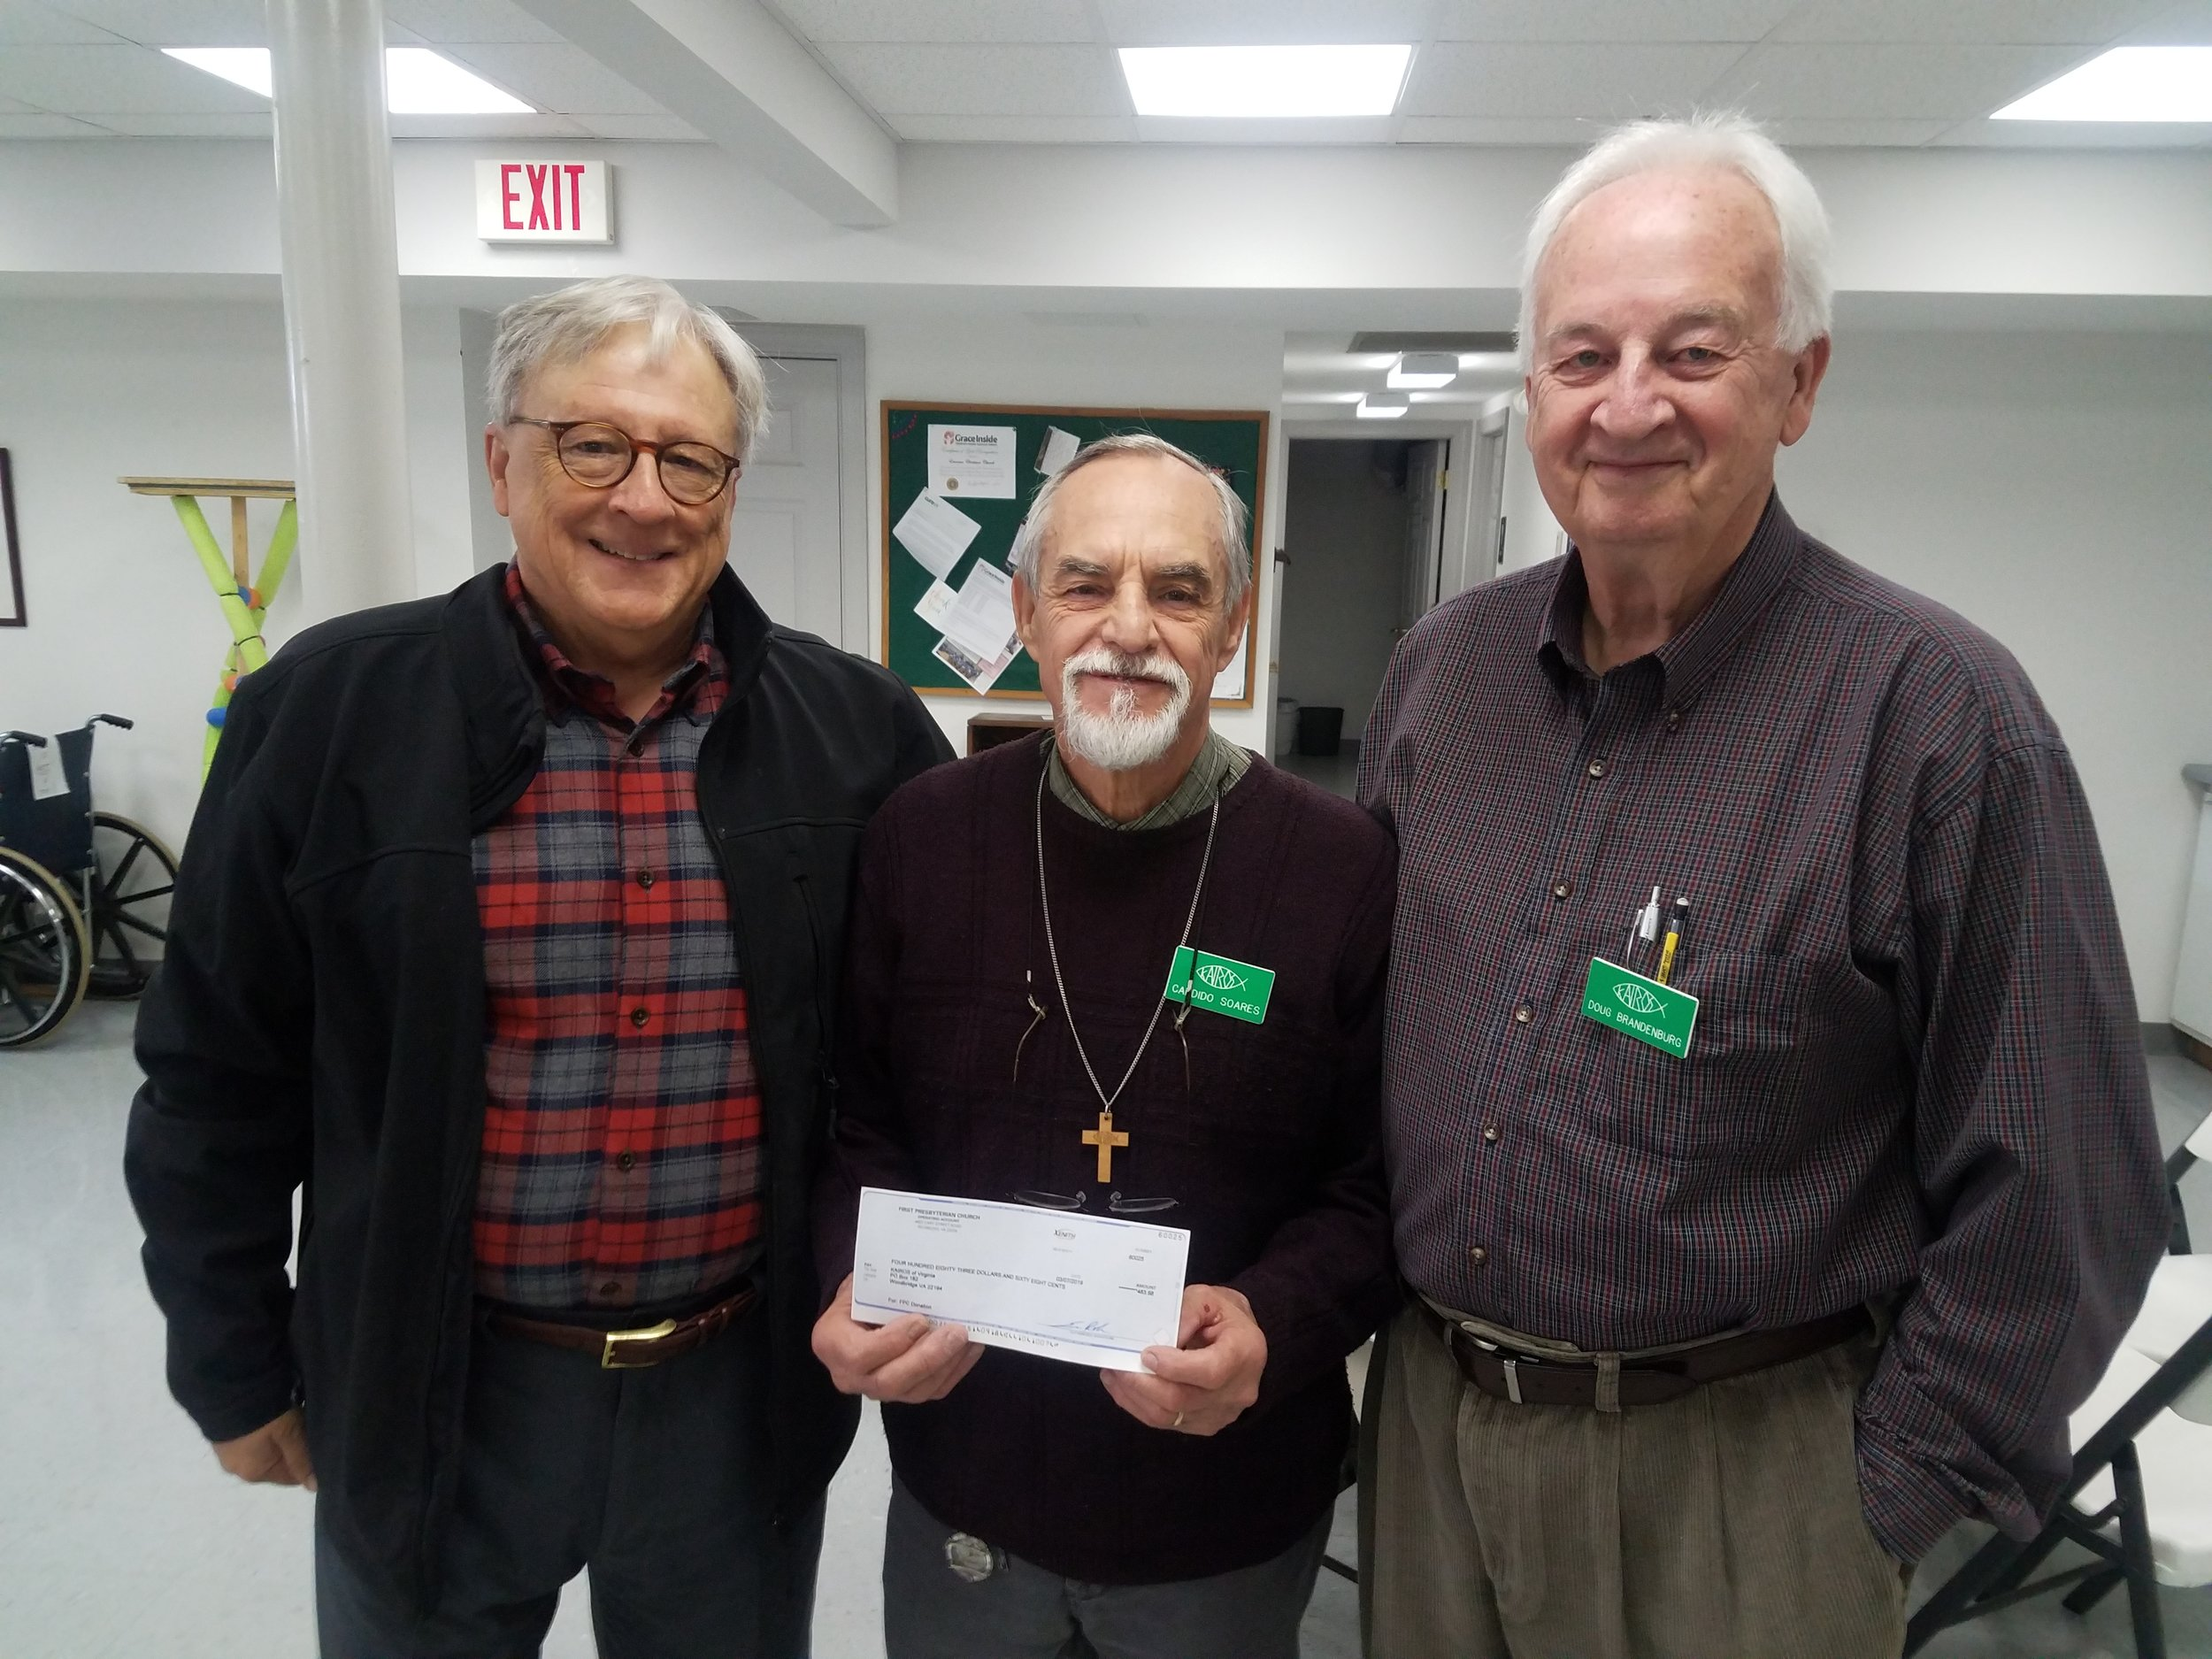 Jim Huitt, Candido Soares (Treasurer), Doug Brandenburg, Team Leader